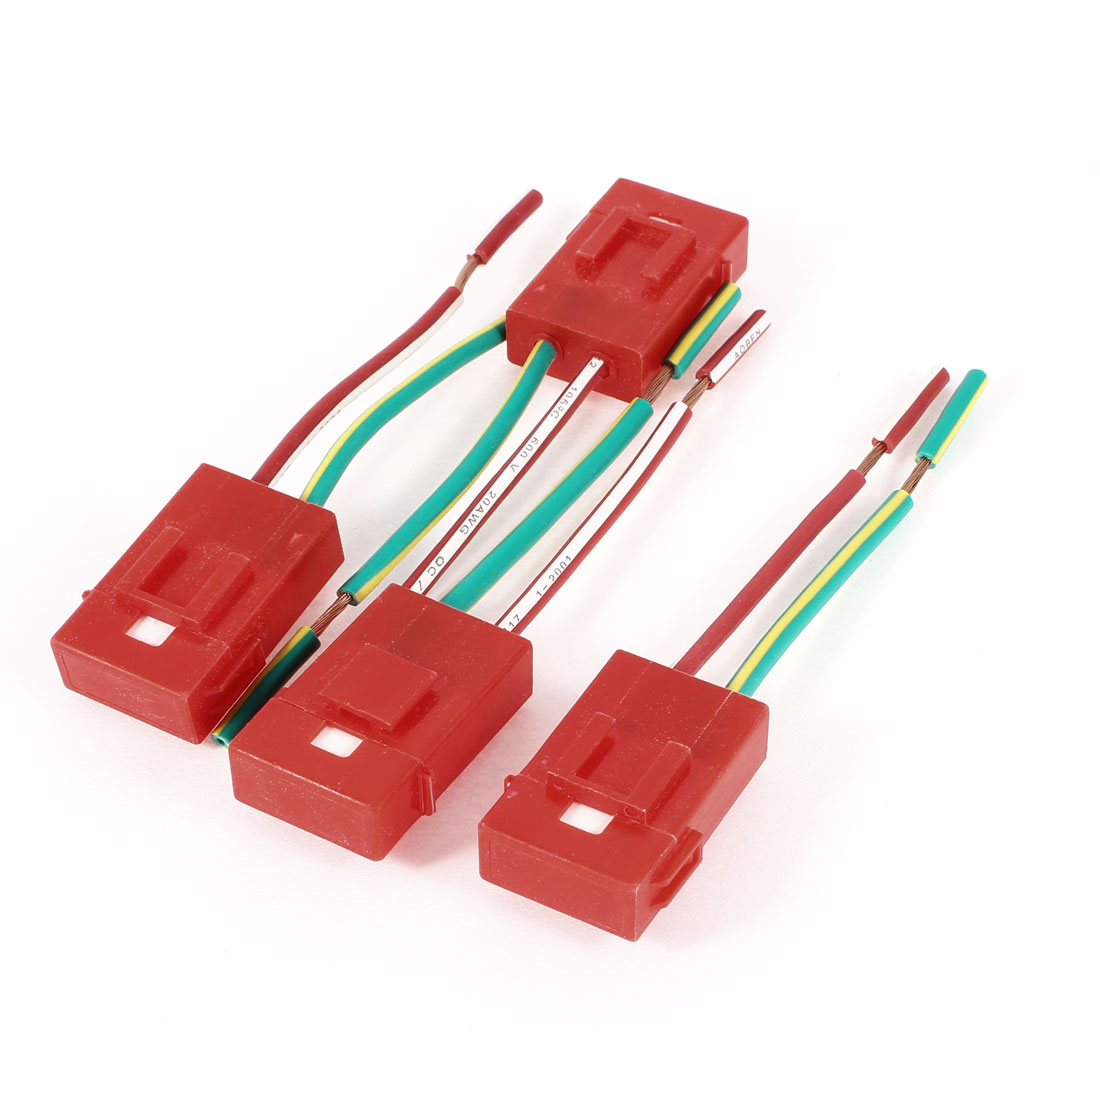 4 Pcs Automotive Plastic Covered Ceramic ATC Blade Inline Fuse Holder Red